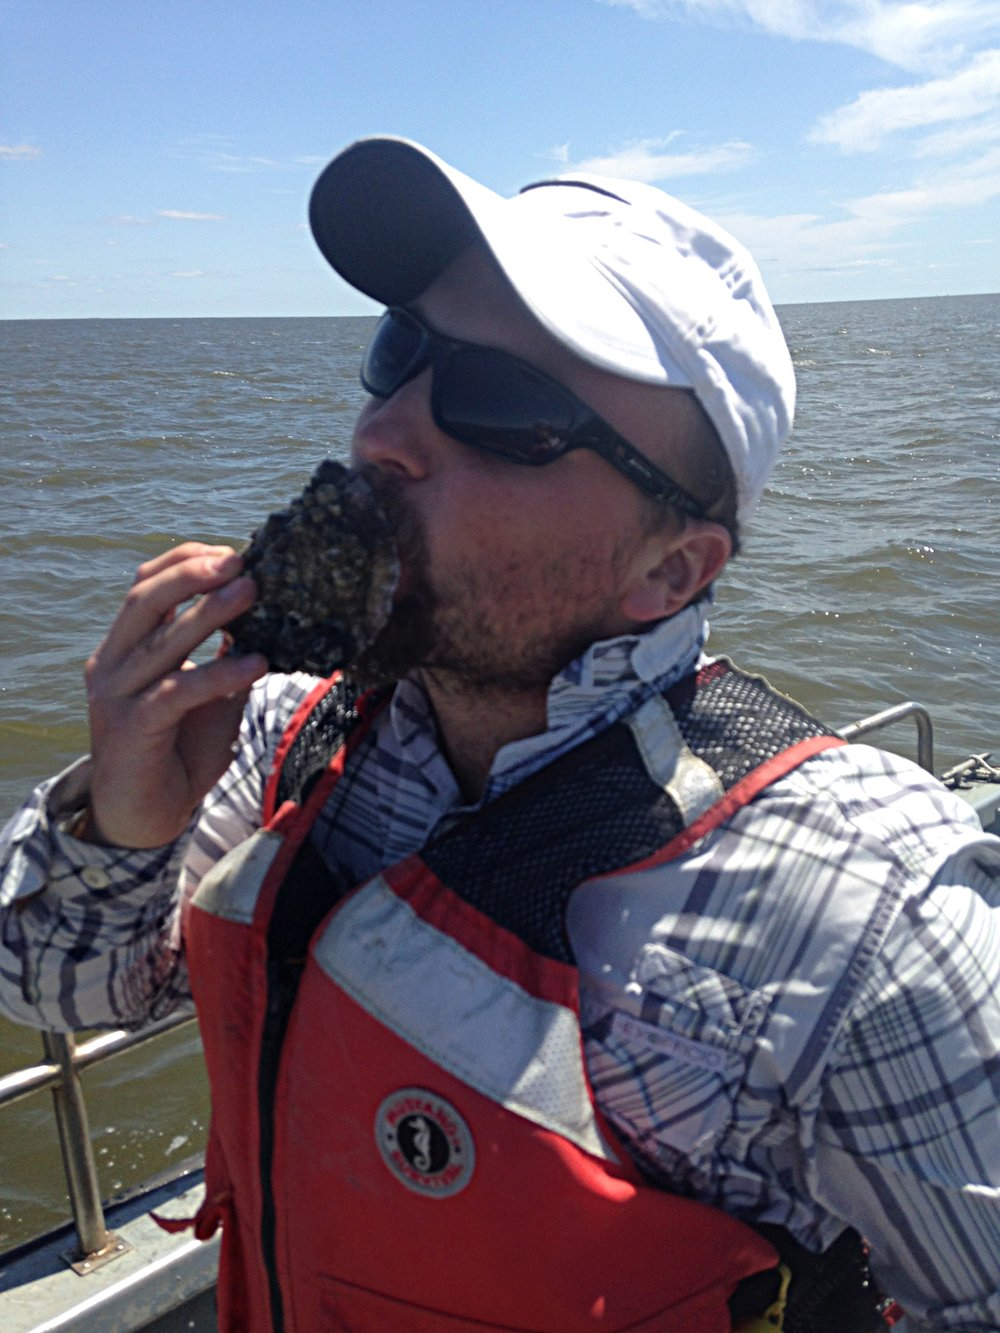 Image of Scott Riley sampling an oyster. Credit: Hollis Jones.